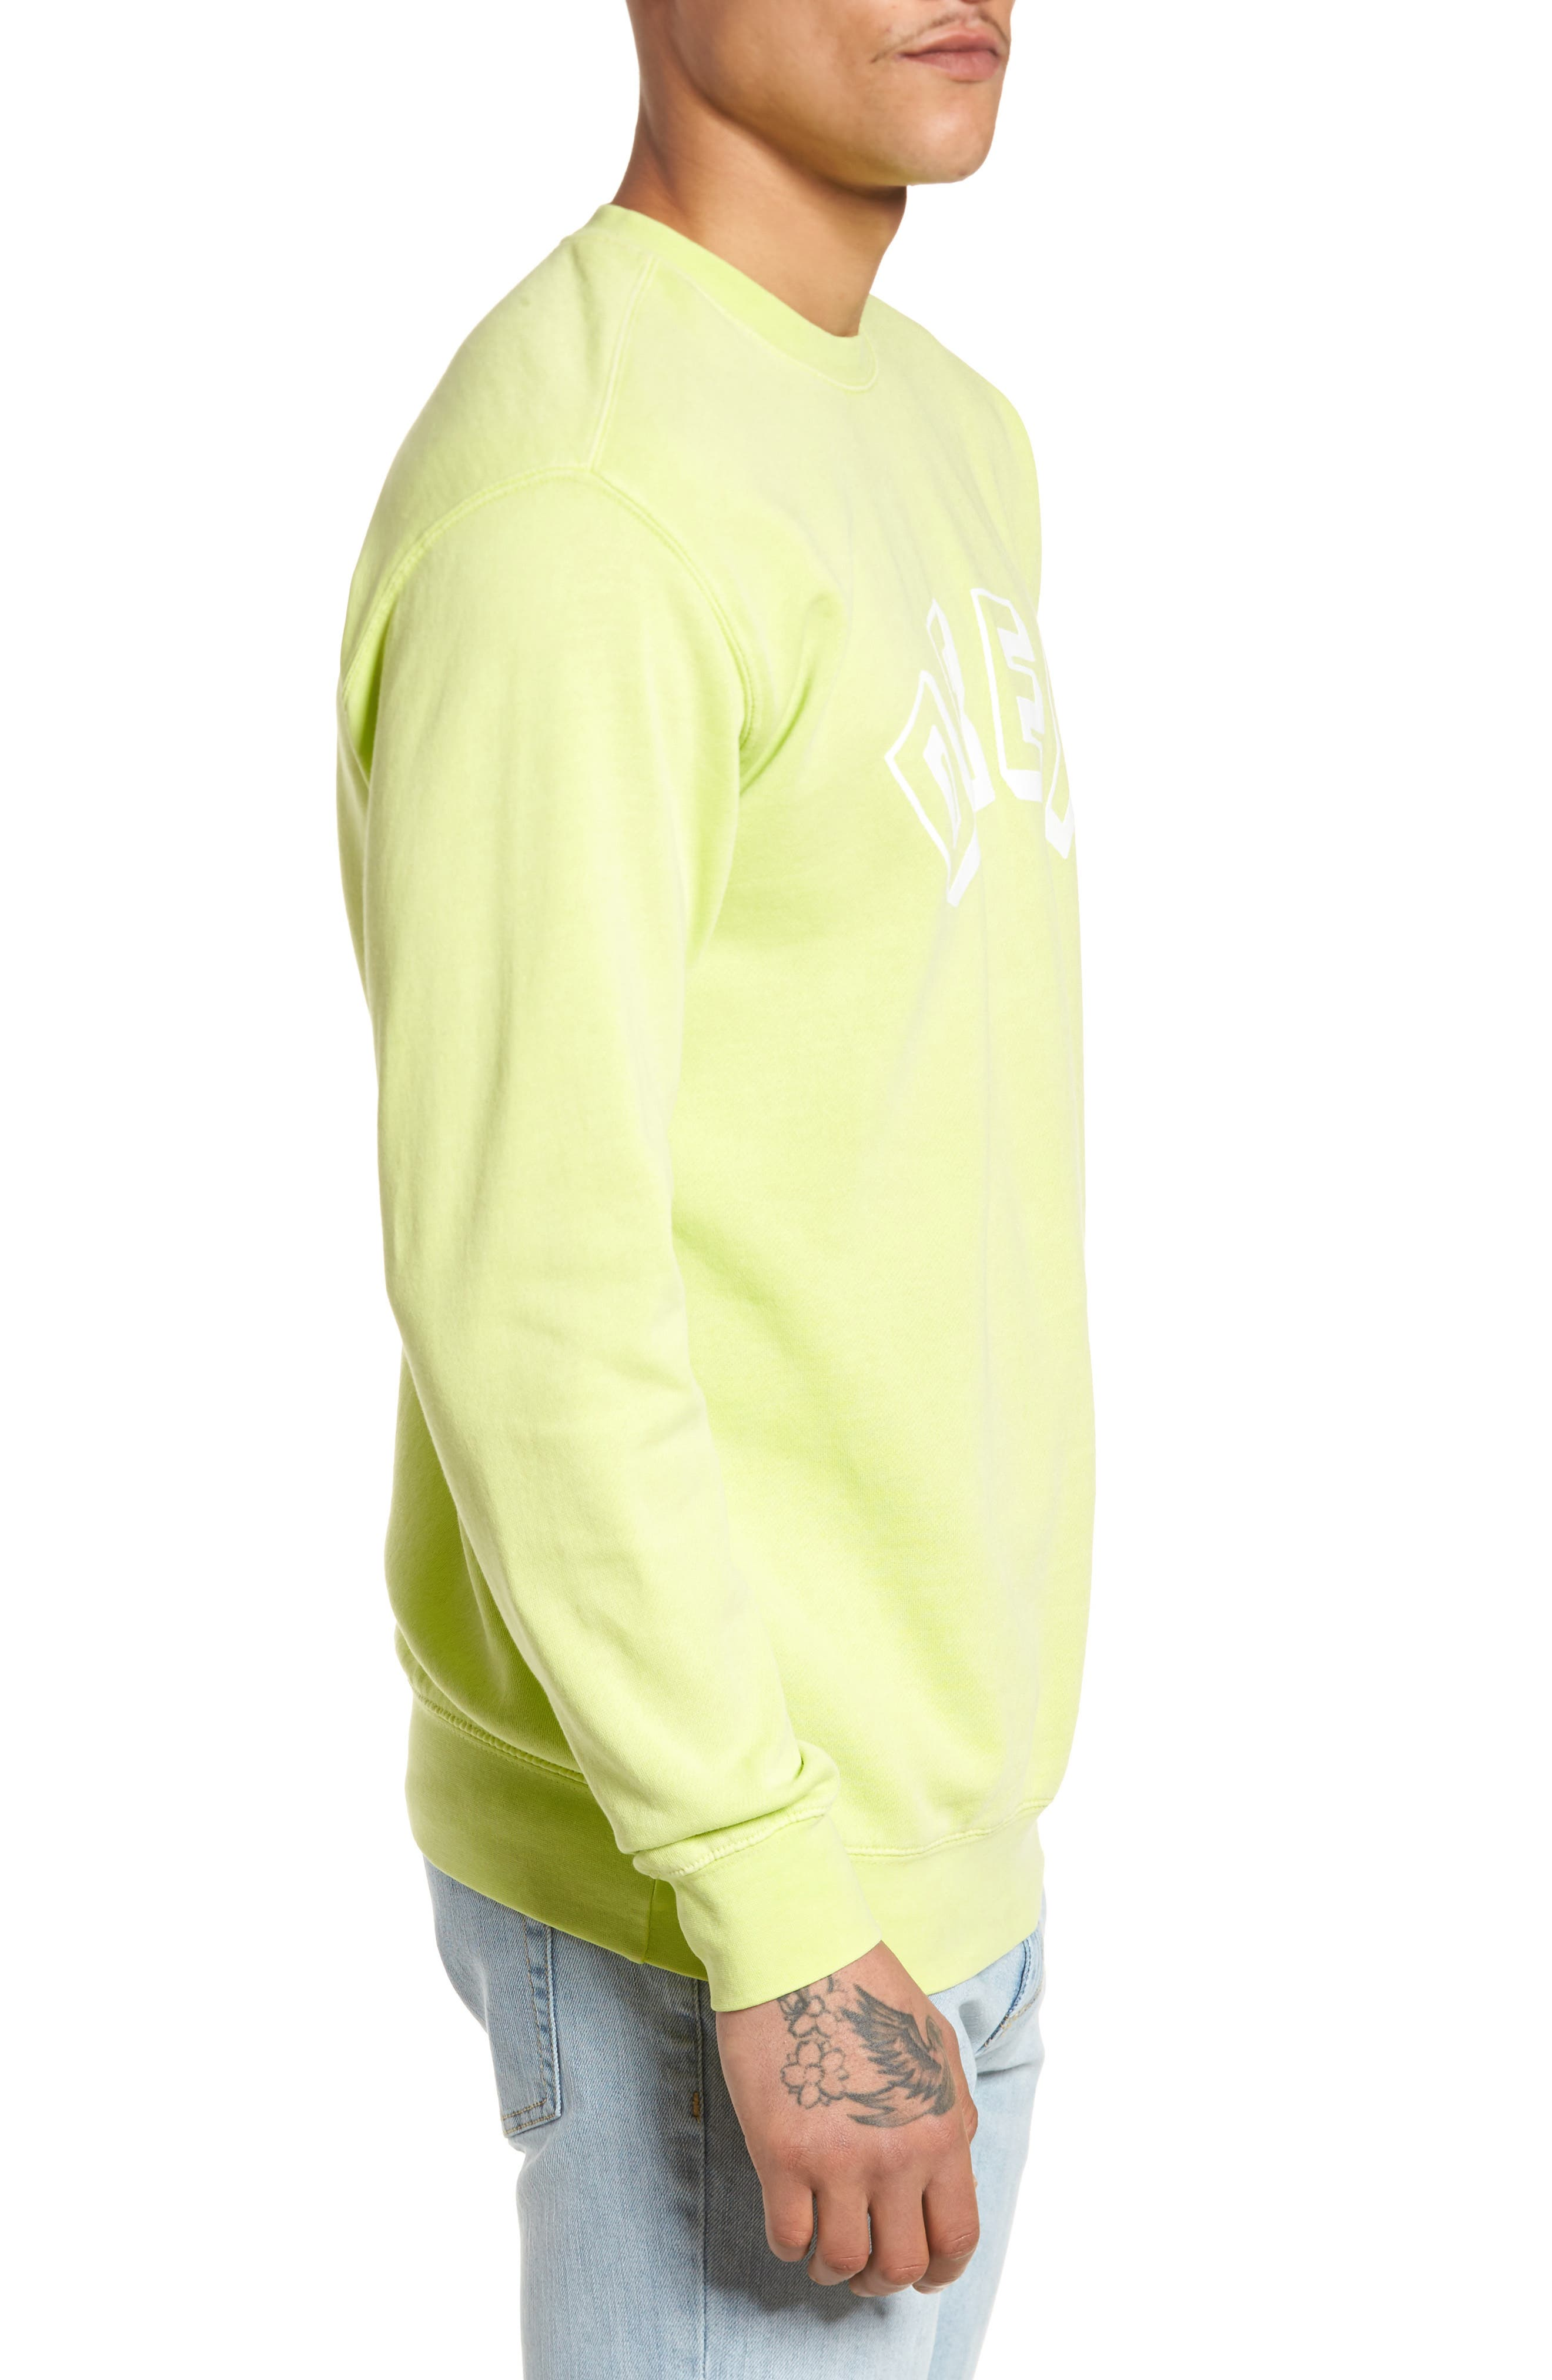 New World Sweatshirt,                             Alternate thumbnail 3, color,                             323